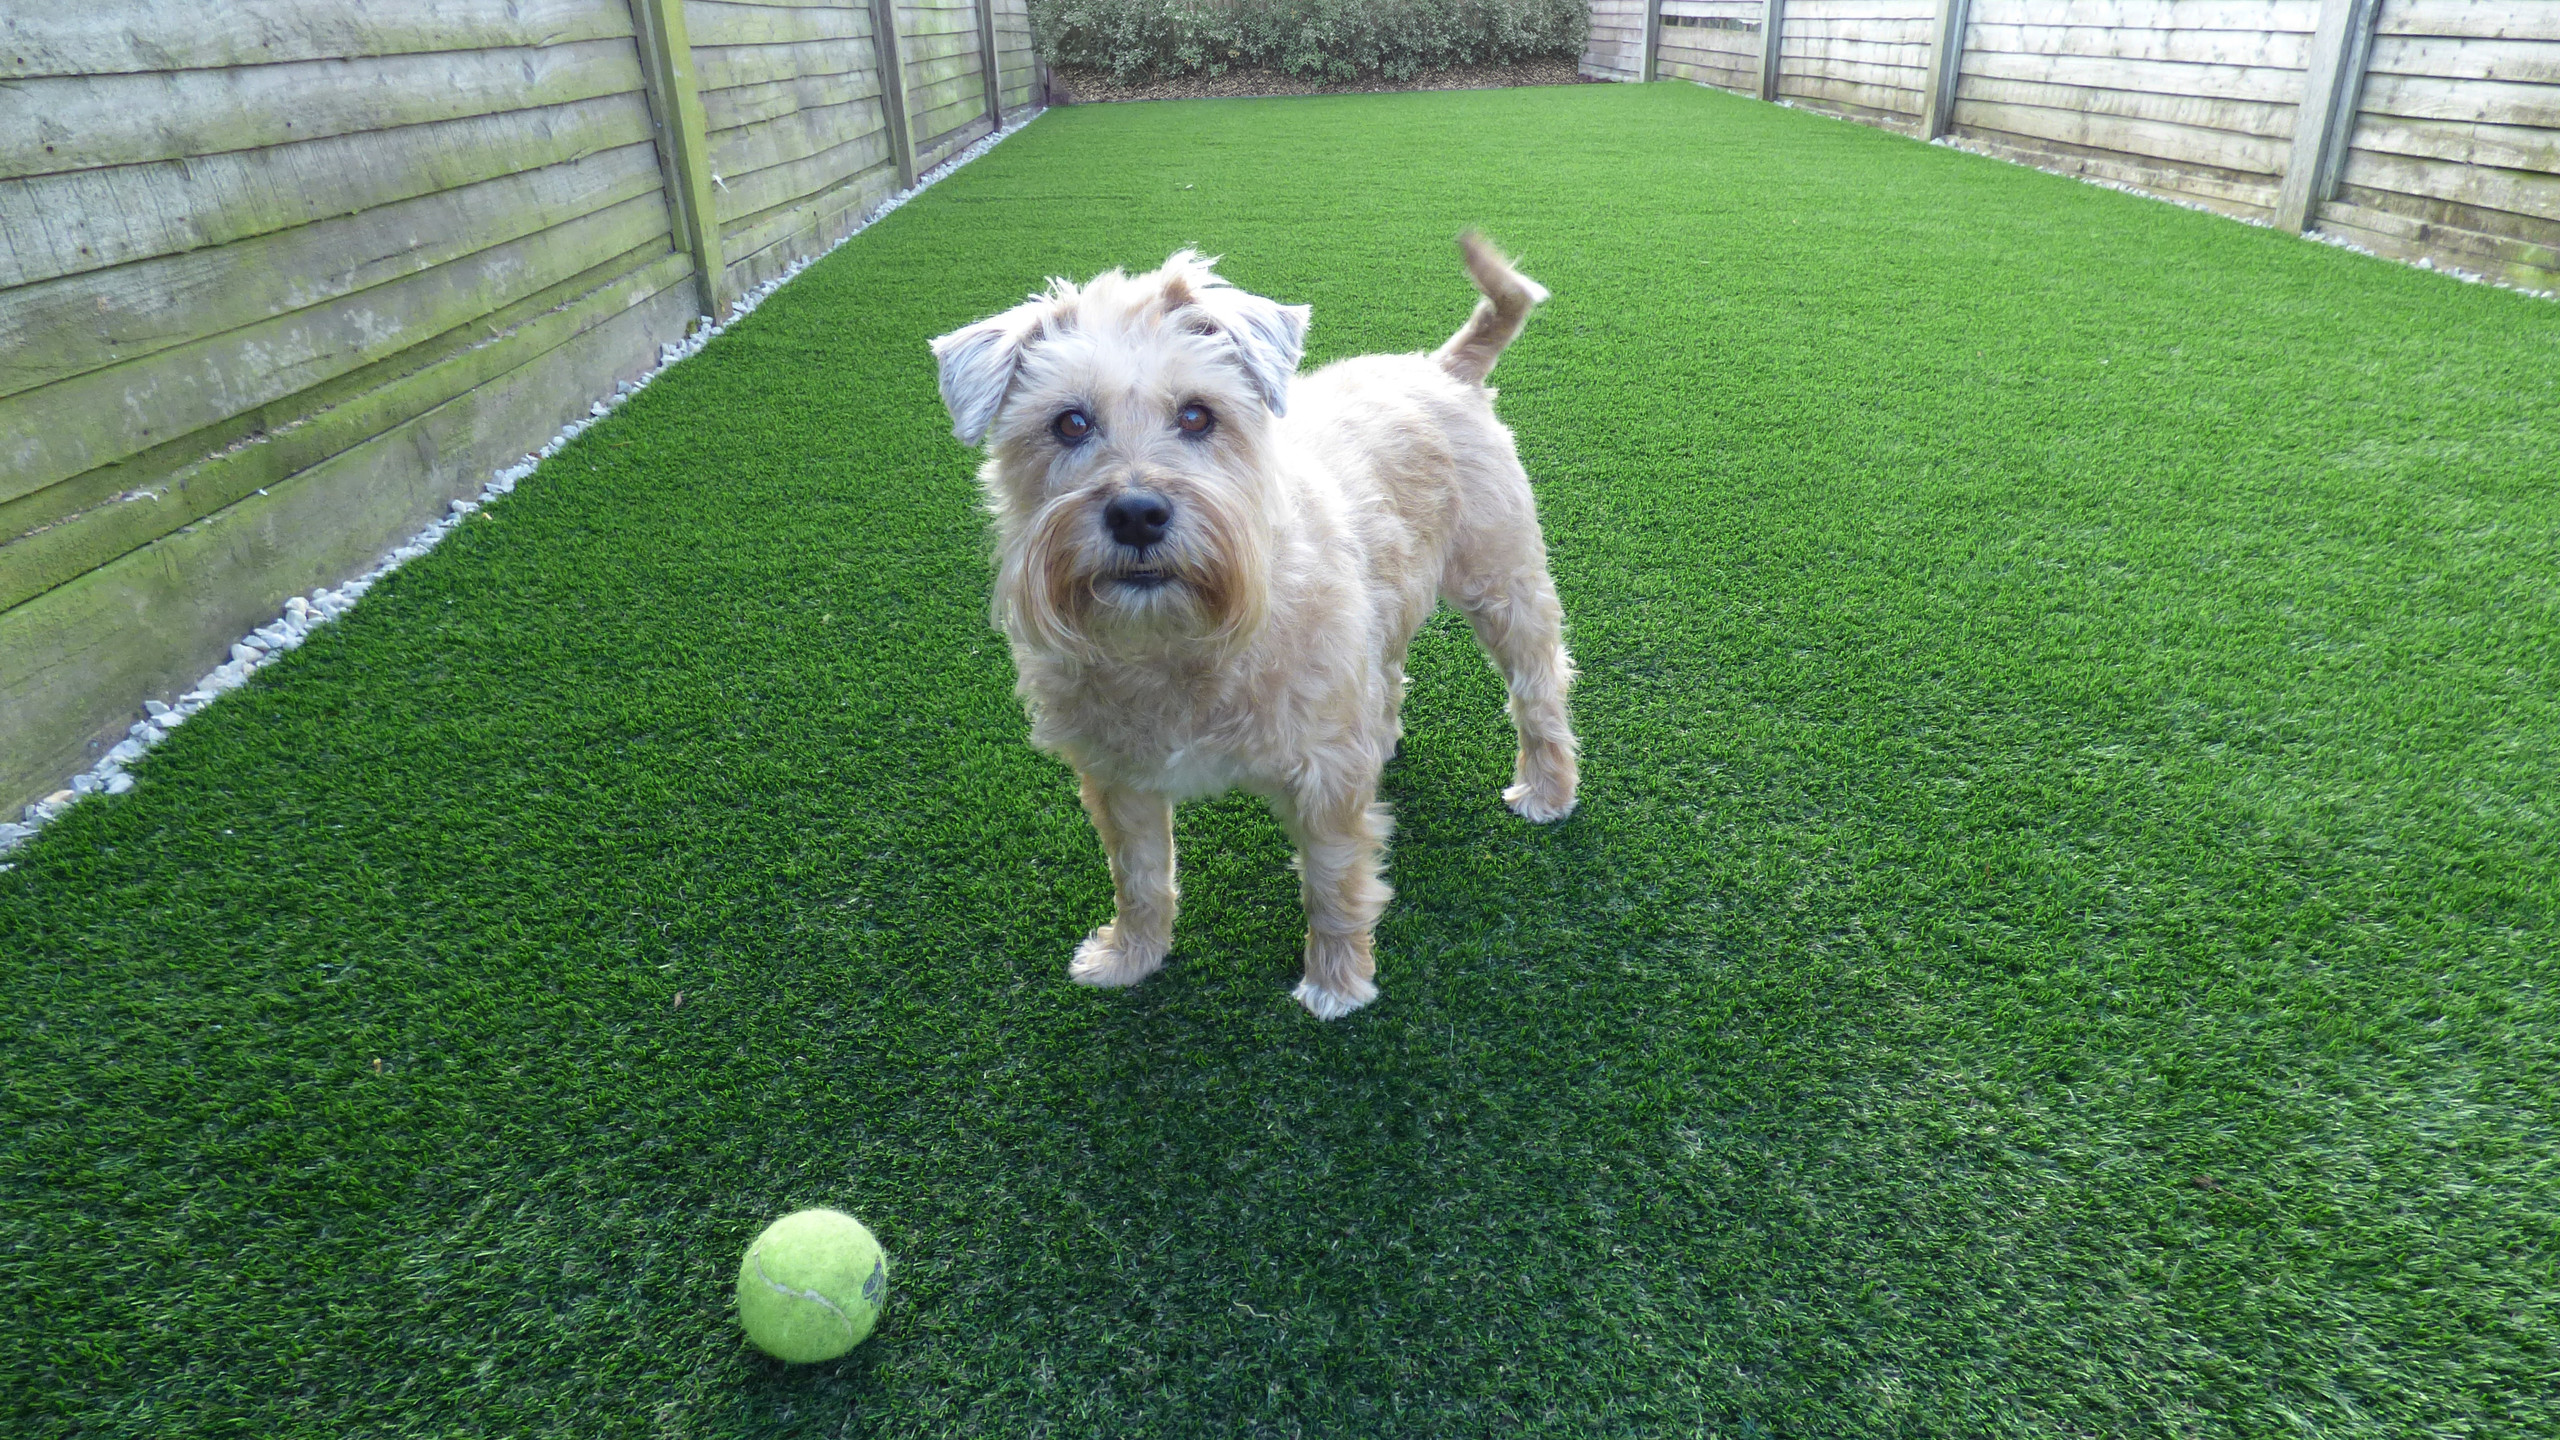 Luxury Artificial Lawn recently completed to create a pet friendly gorgeous lawn installation